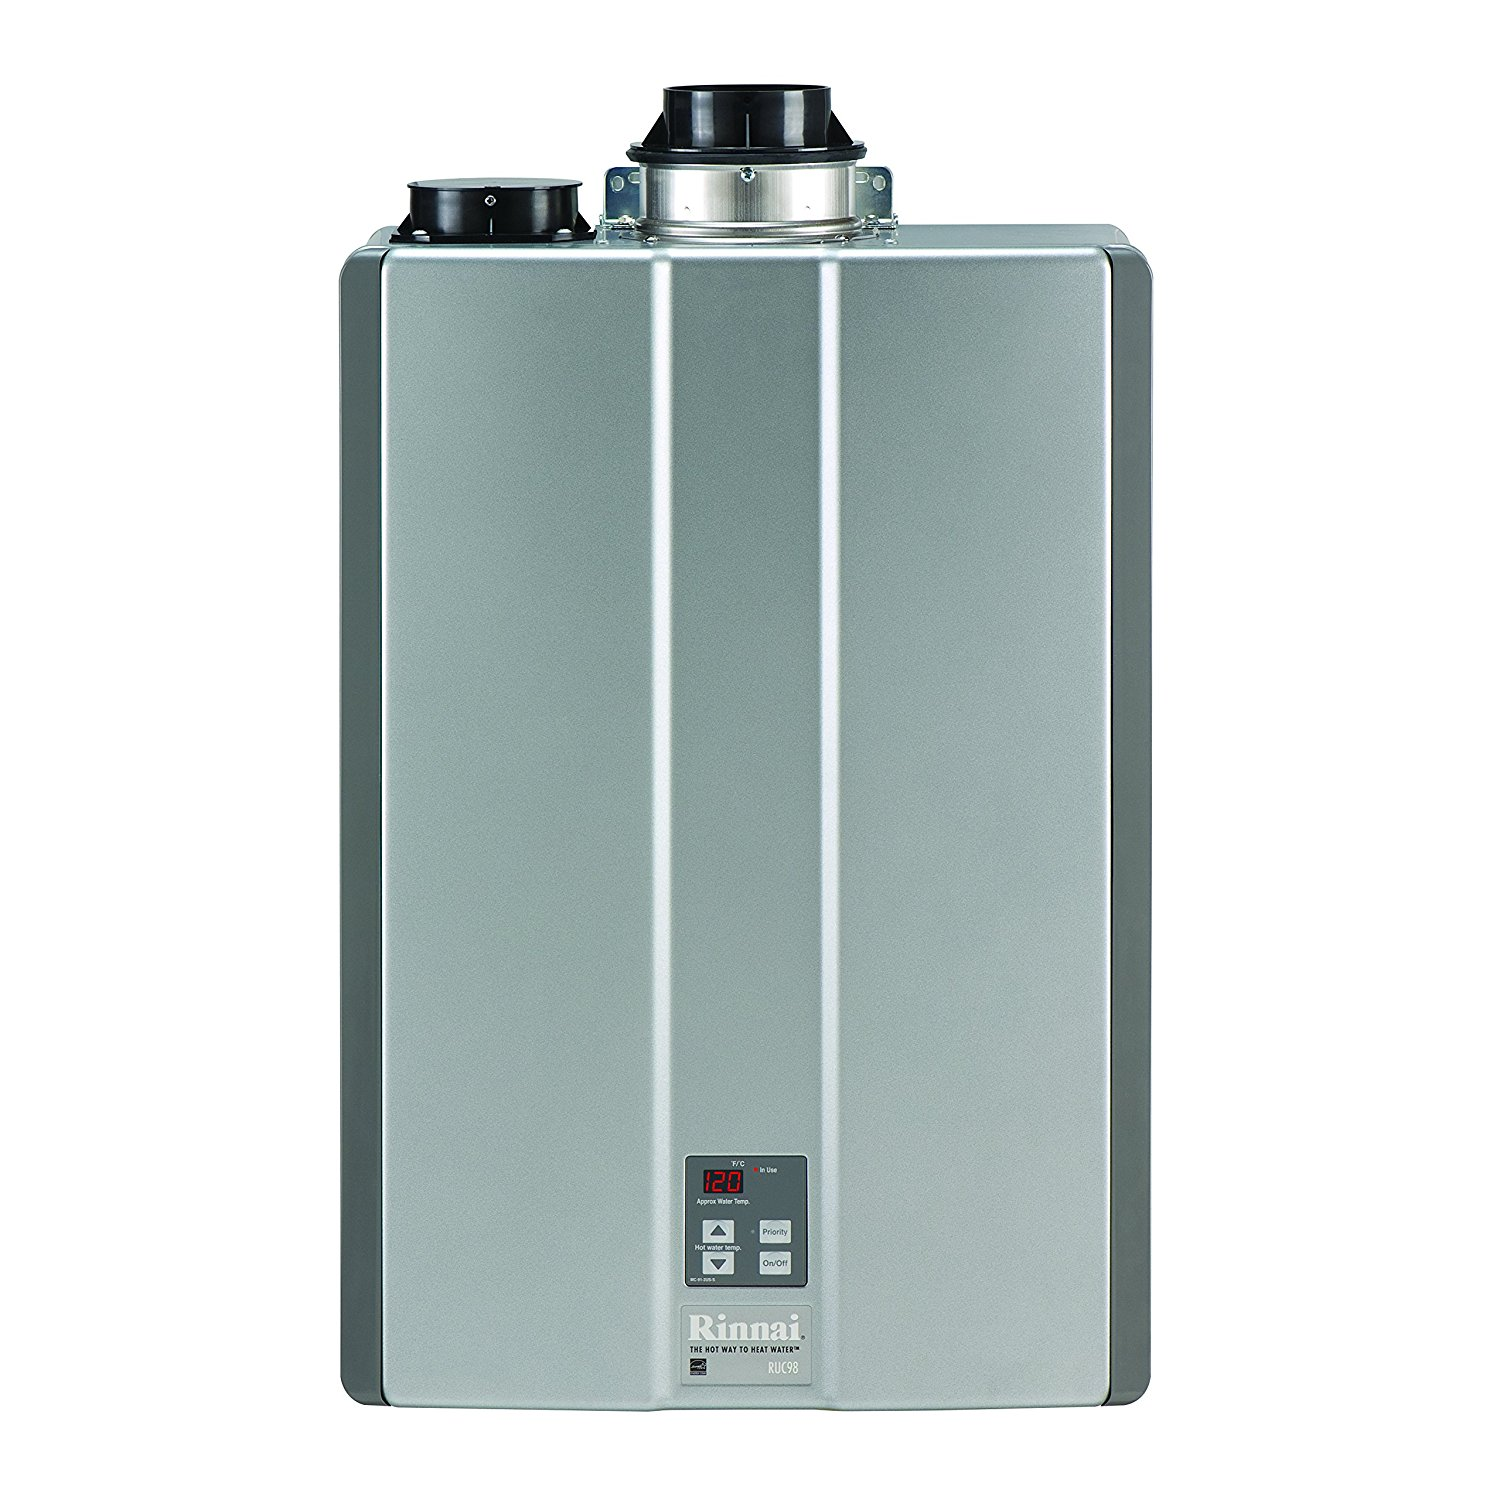 Tankless Water Heater Reviews-Rinnai RUC98iN Ultra Series Natural Gas Tankless Water Heater